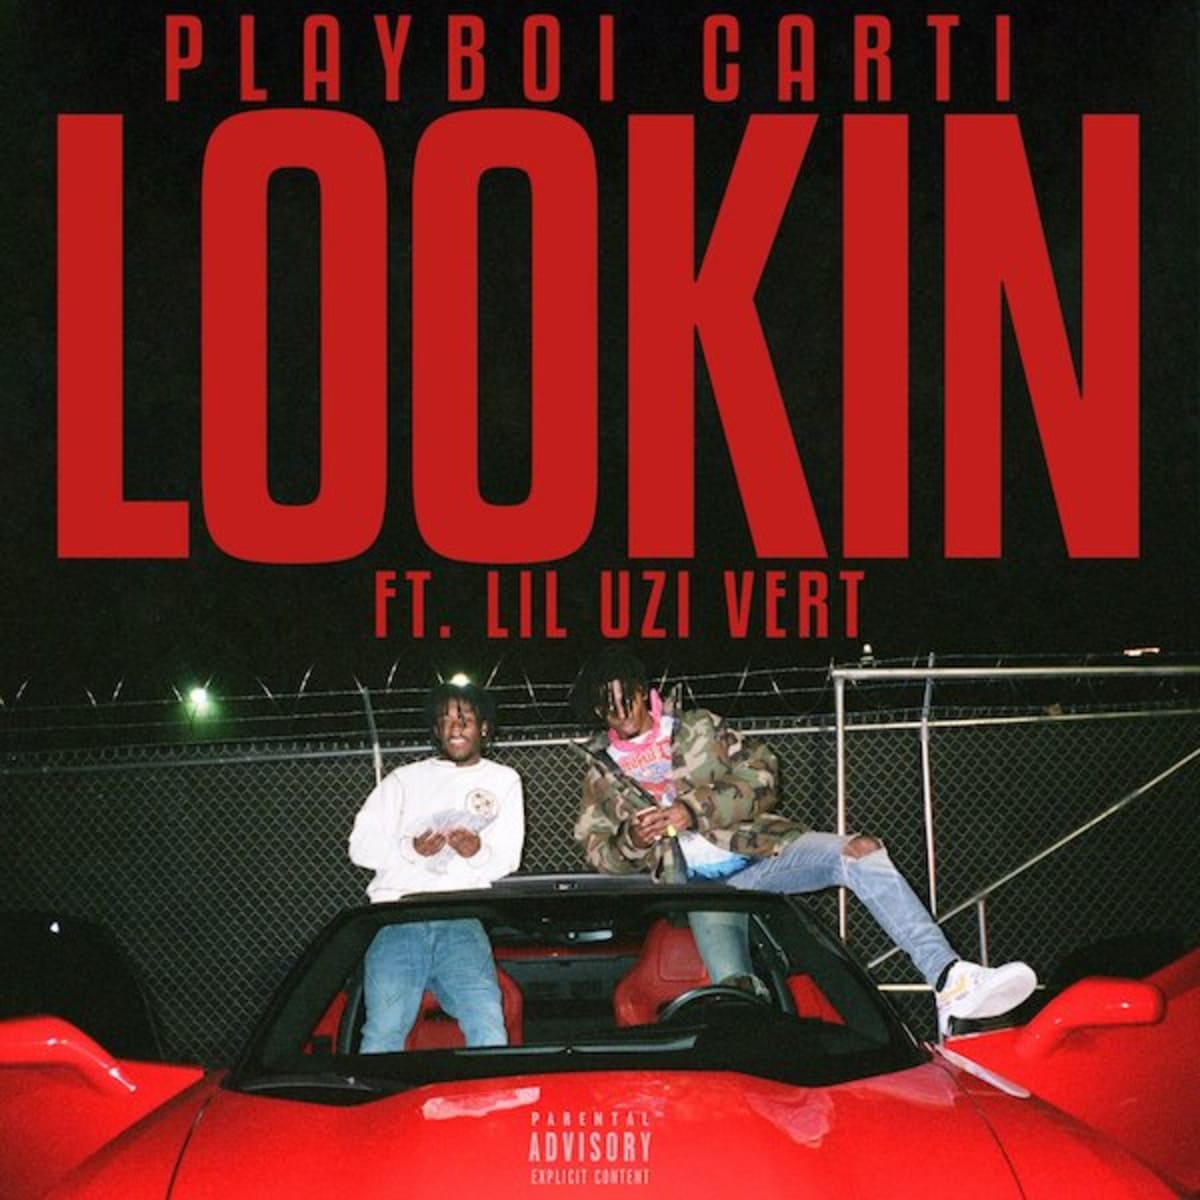 Playboi Carti Feat. Lil Uzi Vert – Lookin (Video)